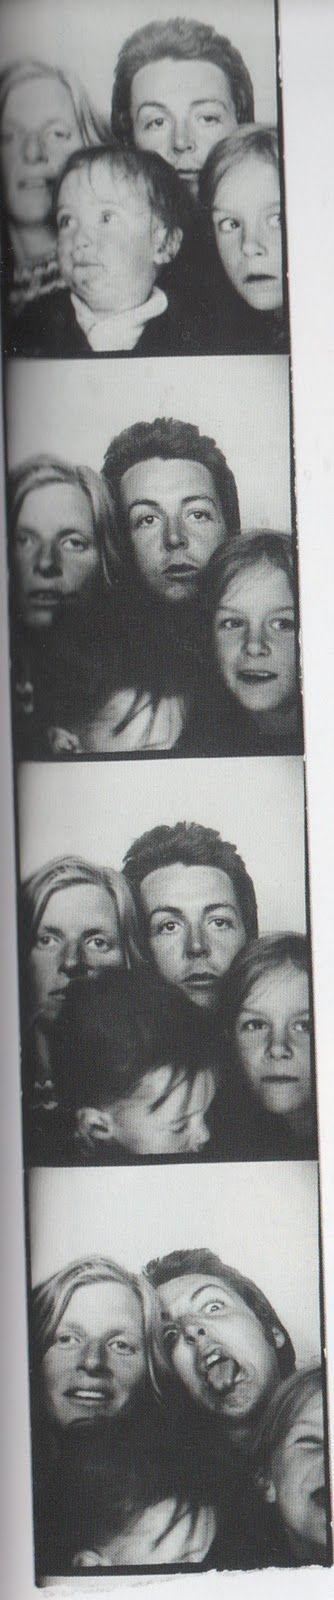 Paul and Linda McCartney and family. Vintage Photo Booth.